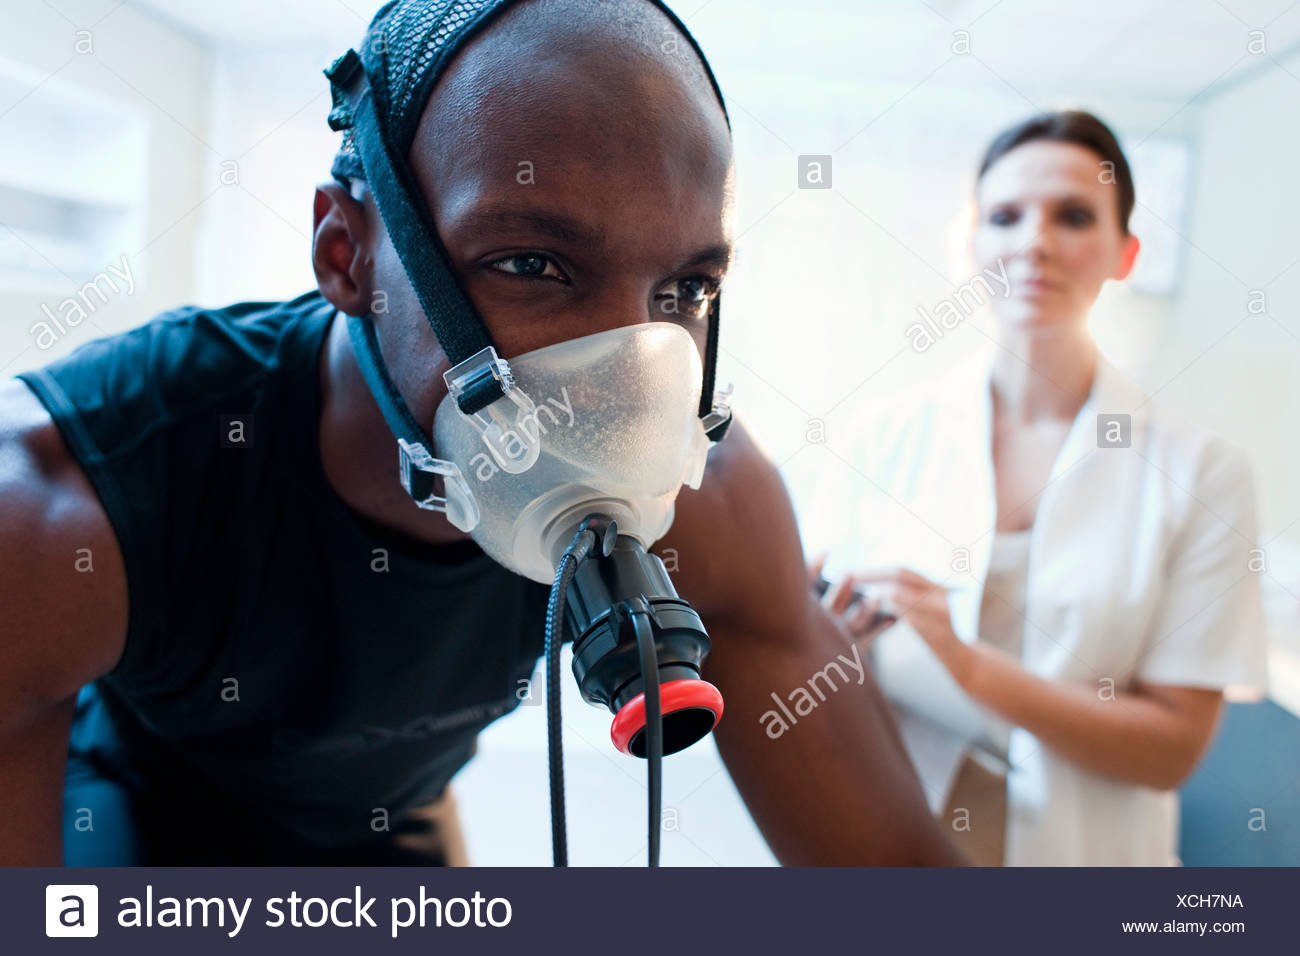 MODEL RELEASED Performance testing Athlete riding an exercise bike while his performance and oxygen consumption are measured - Stock Image